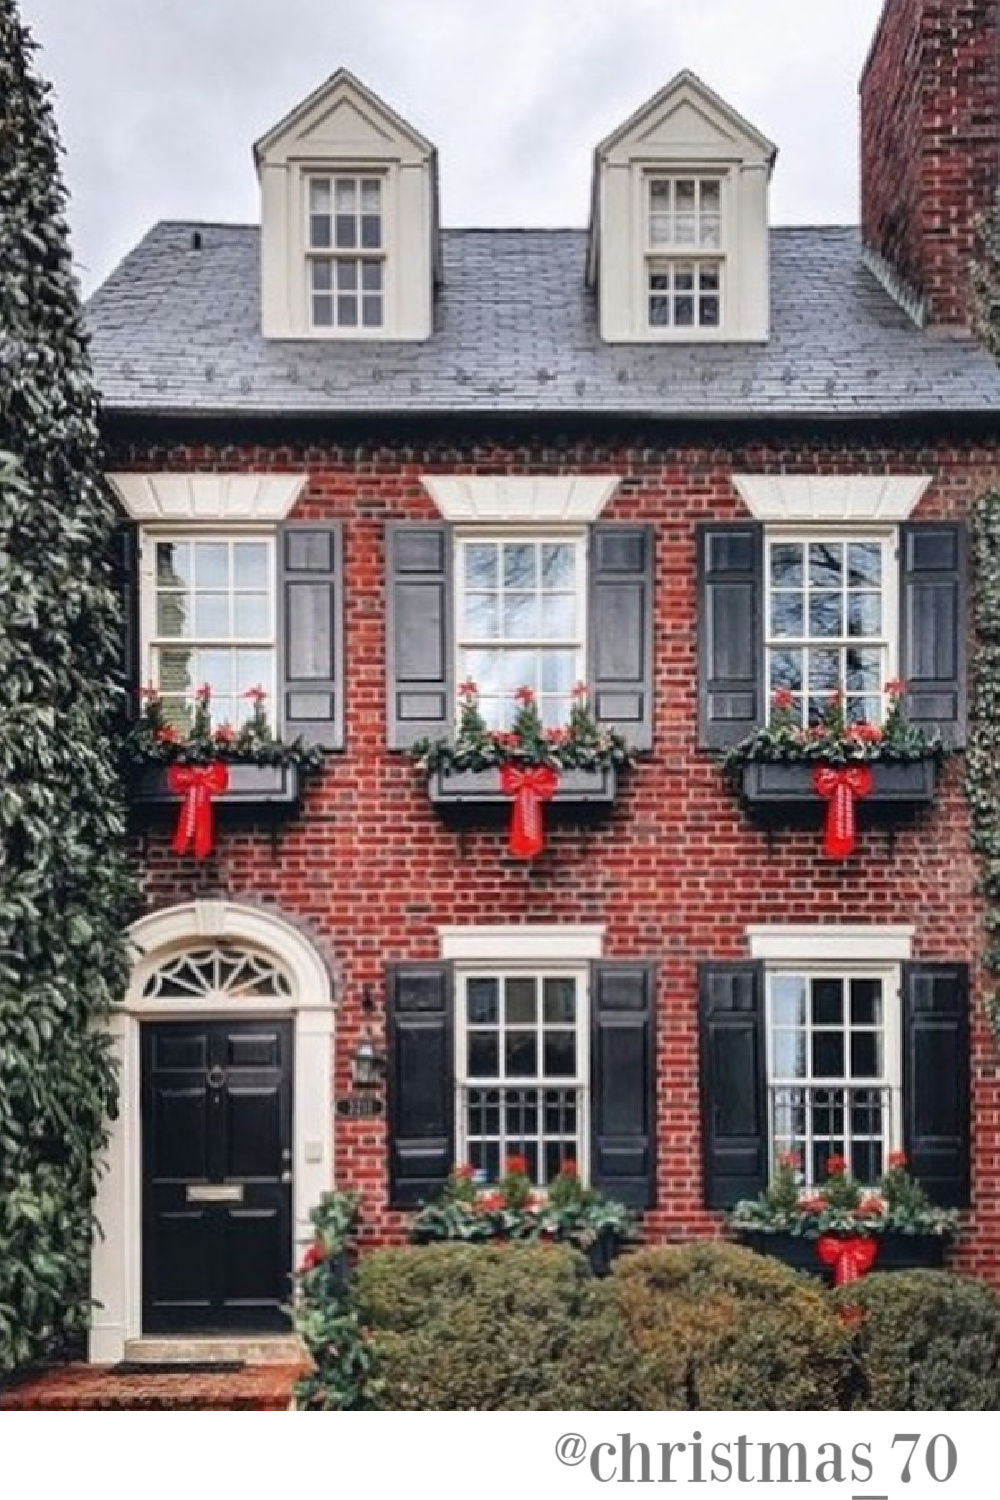 Traditional red brick house exterior decorated with window boxes for holidays - @christmas_70. #christmasdecor #houseexteriors #outdoorchristmasdecor